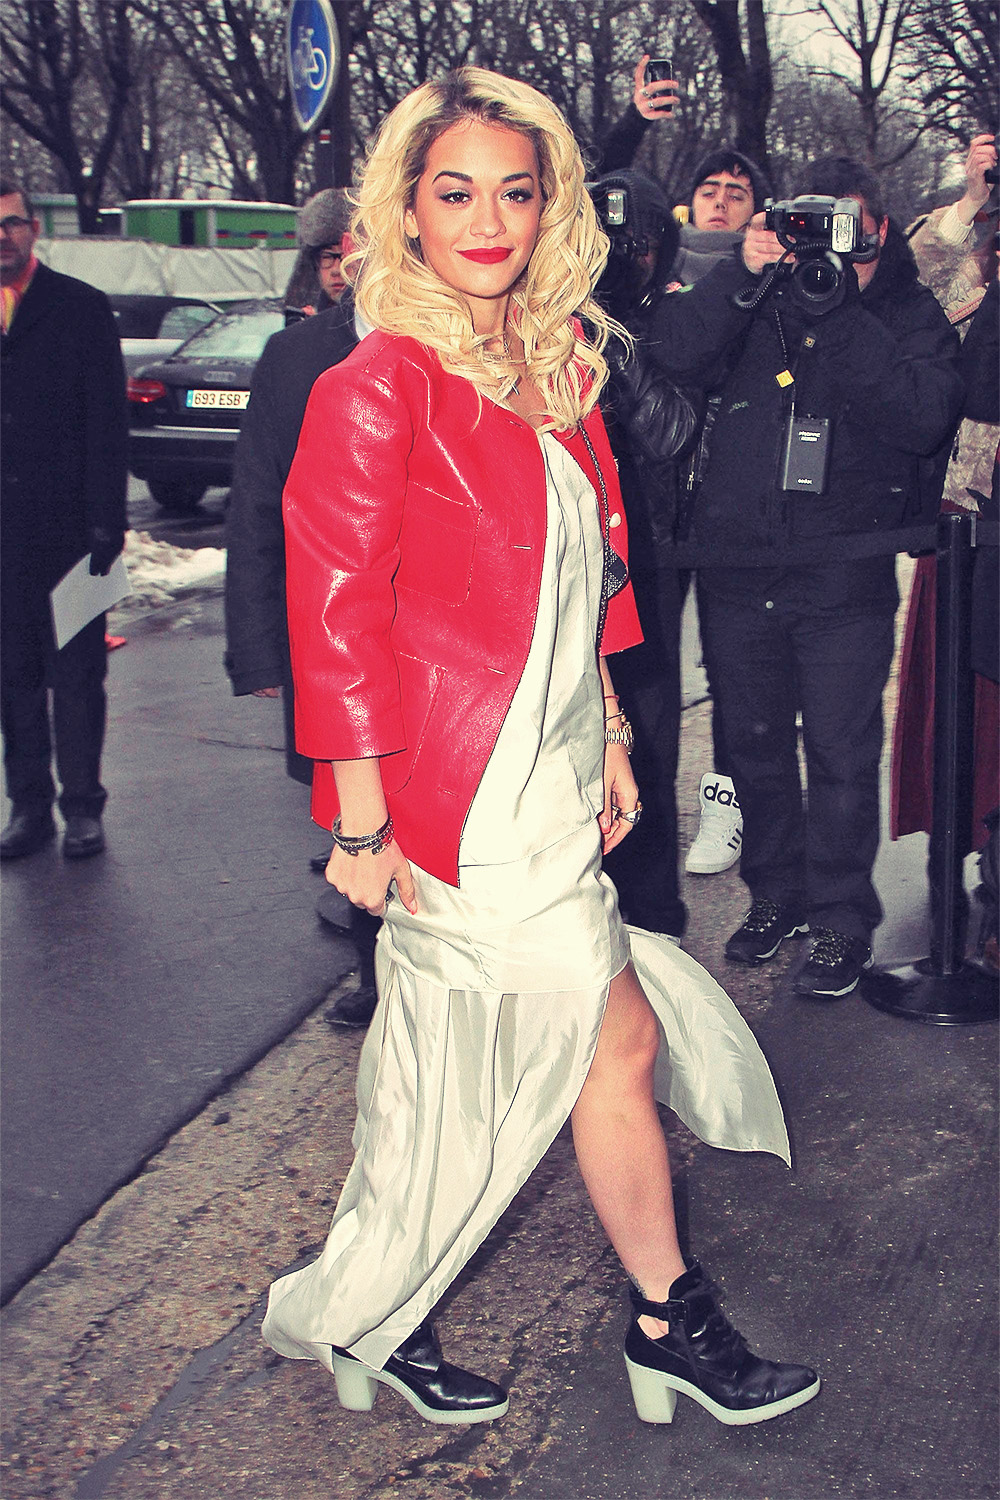 Rita Ora attends Paris Fashion Week 2013